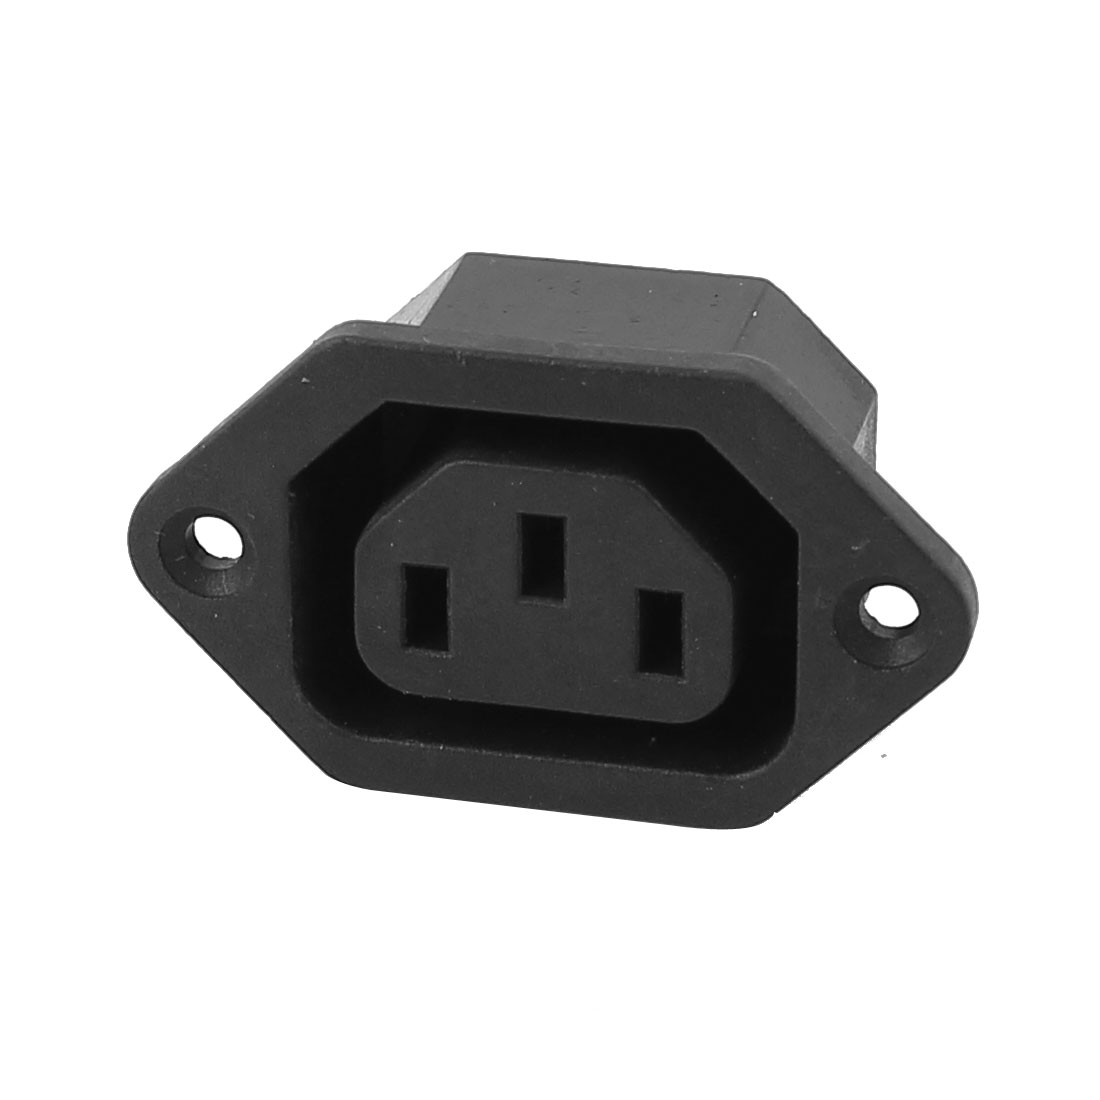 250V 10A IEC 320 C13 3 Pin Terminal Male Panel Mount Plug Connector Socket